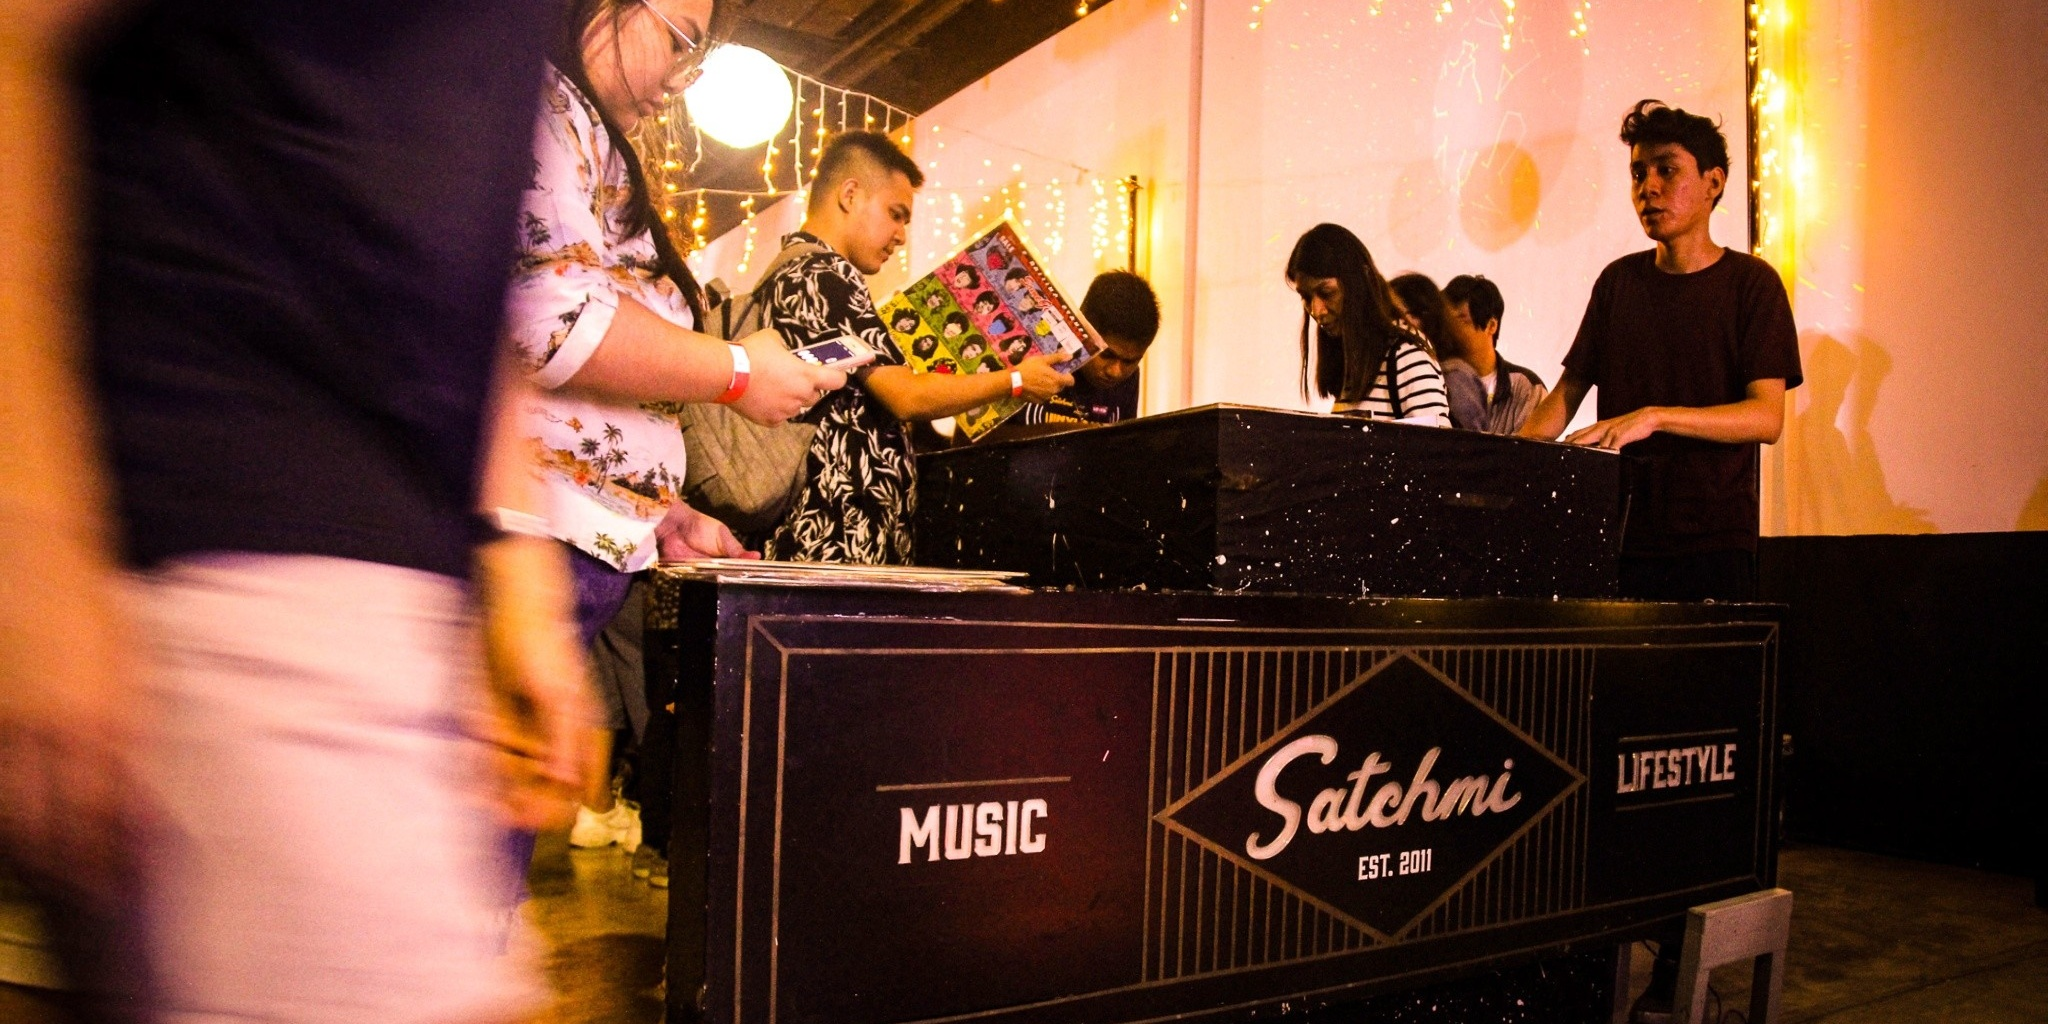 Satchmi unites music and art fans at Vinyl Day – photo gallery